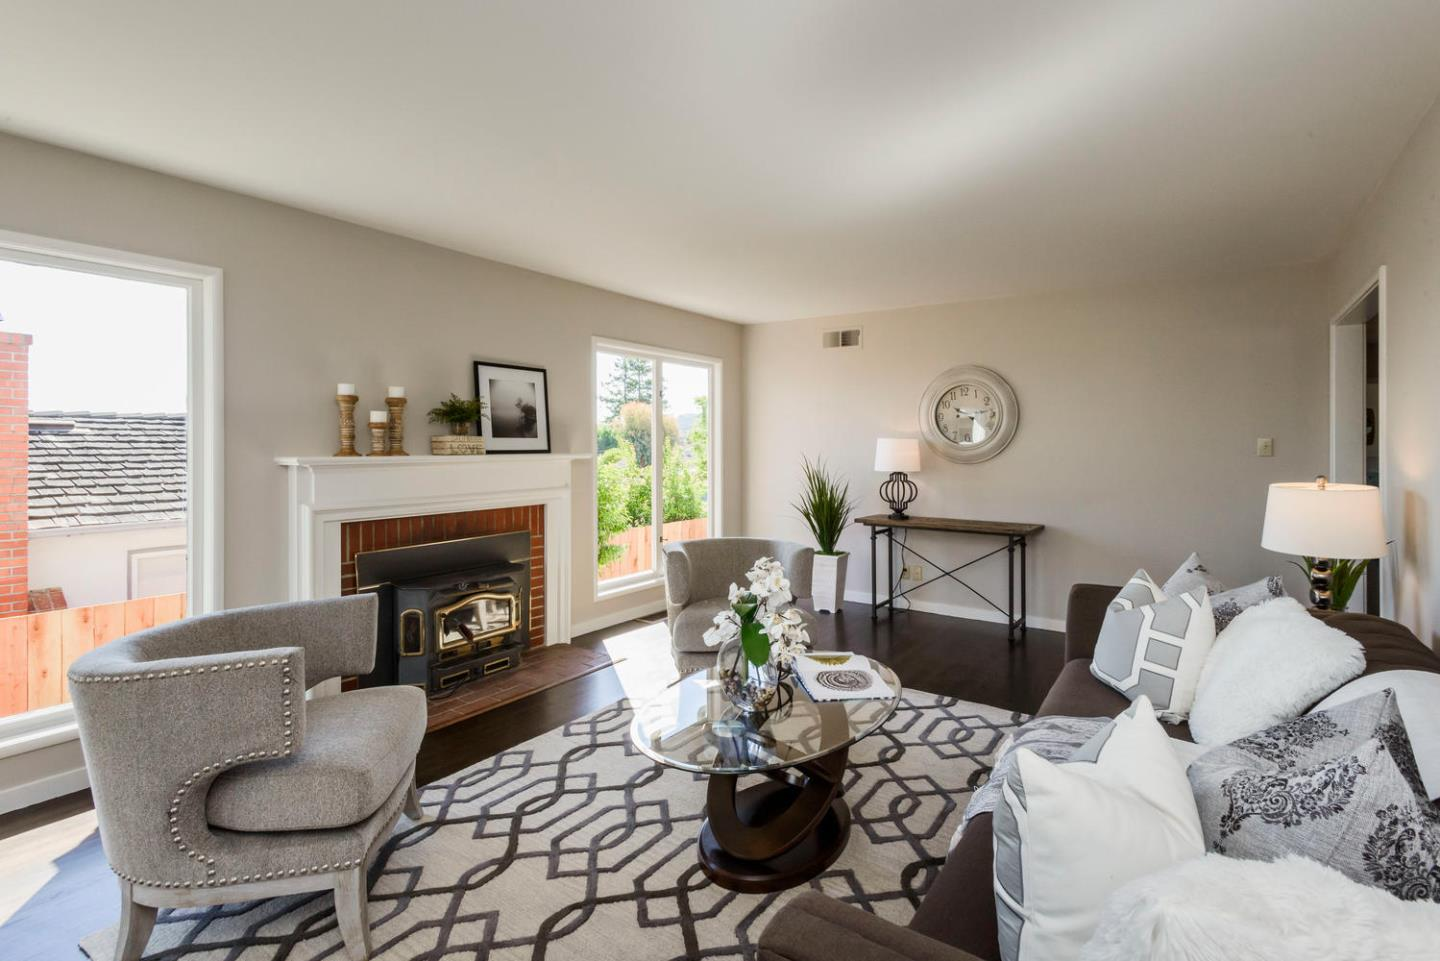 Additional photo for property listing at 2845 Monterey St  SAN MATEO, CALIFORNIA 94403